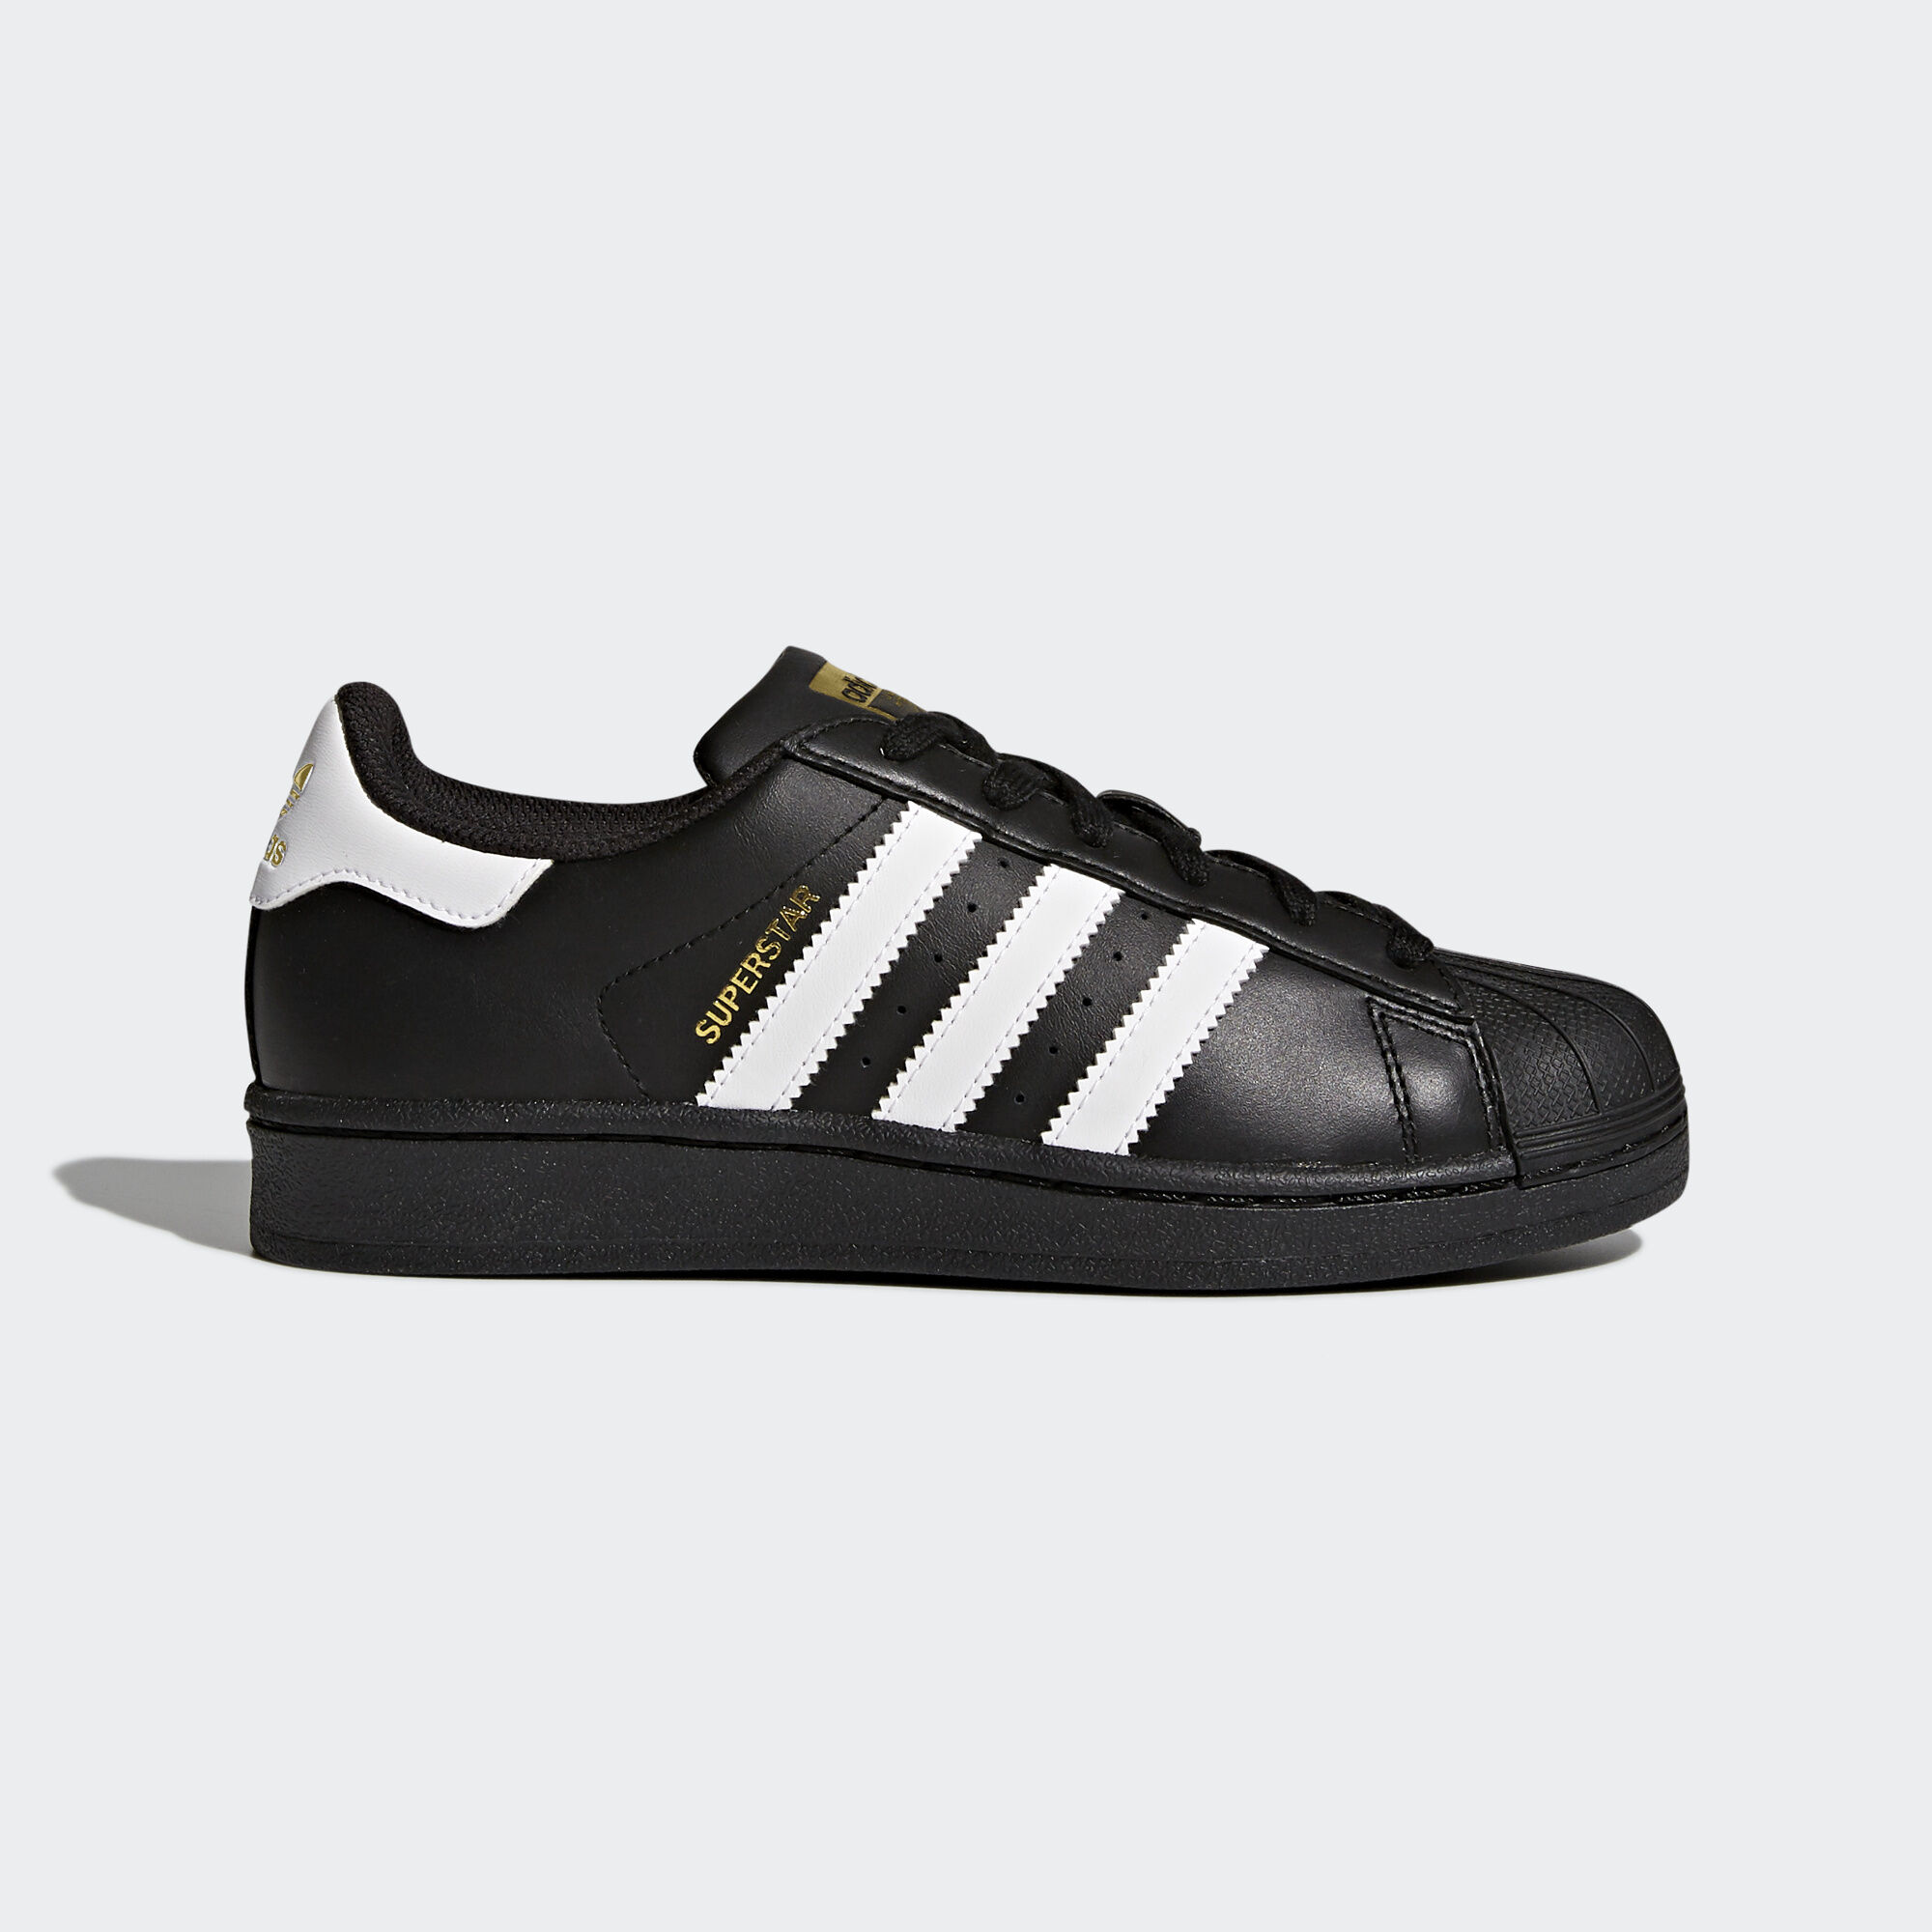 Iupkoxz Superstar Adidas City Sock Tumblr Wutzoxkip Shoes Nmb oxCBed